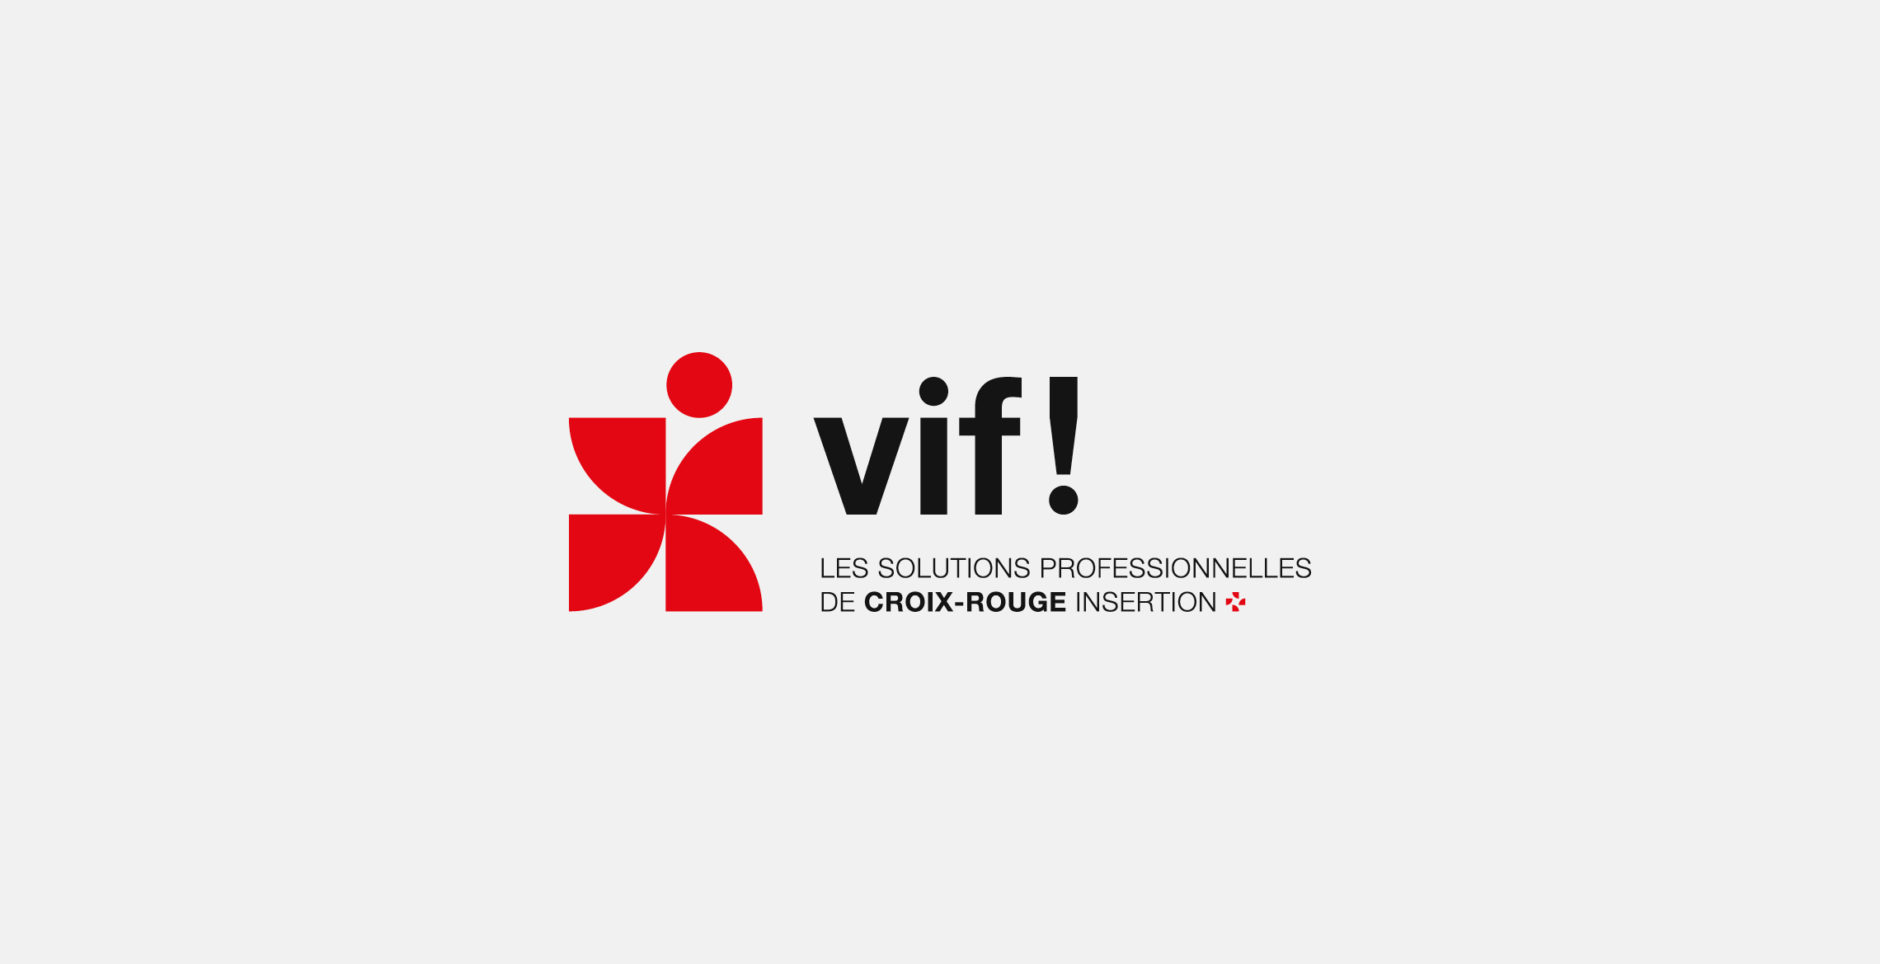 Vif logo croix-rouge insertion